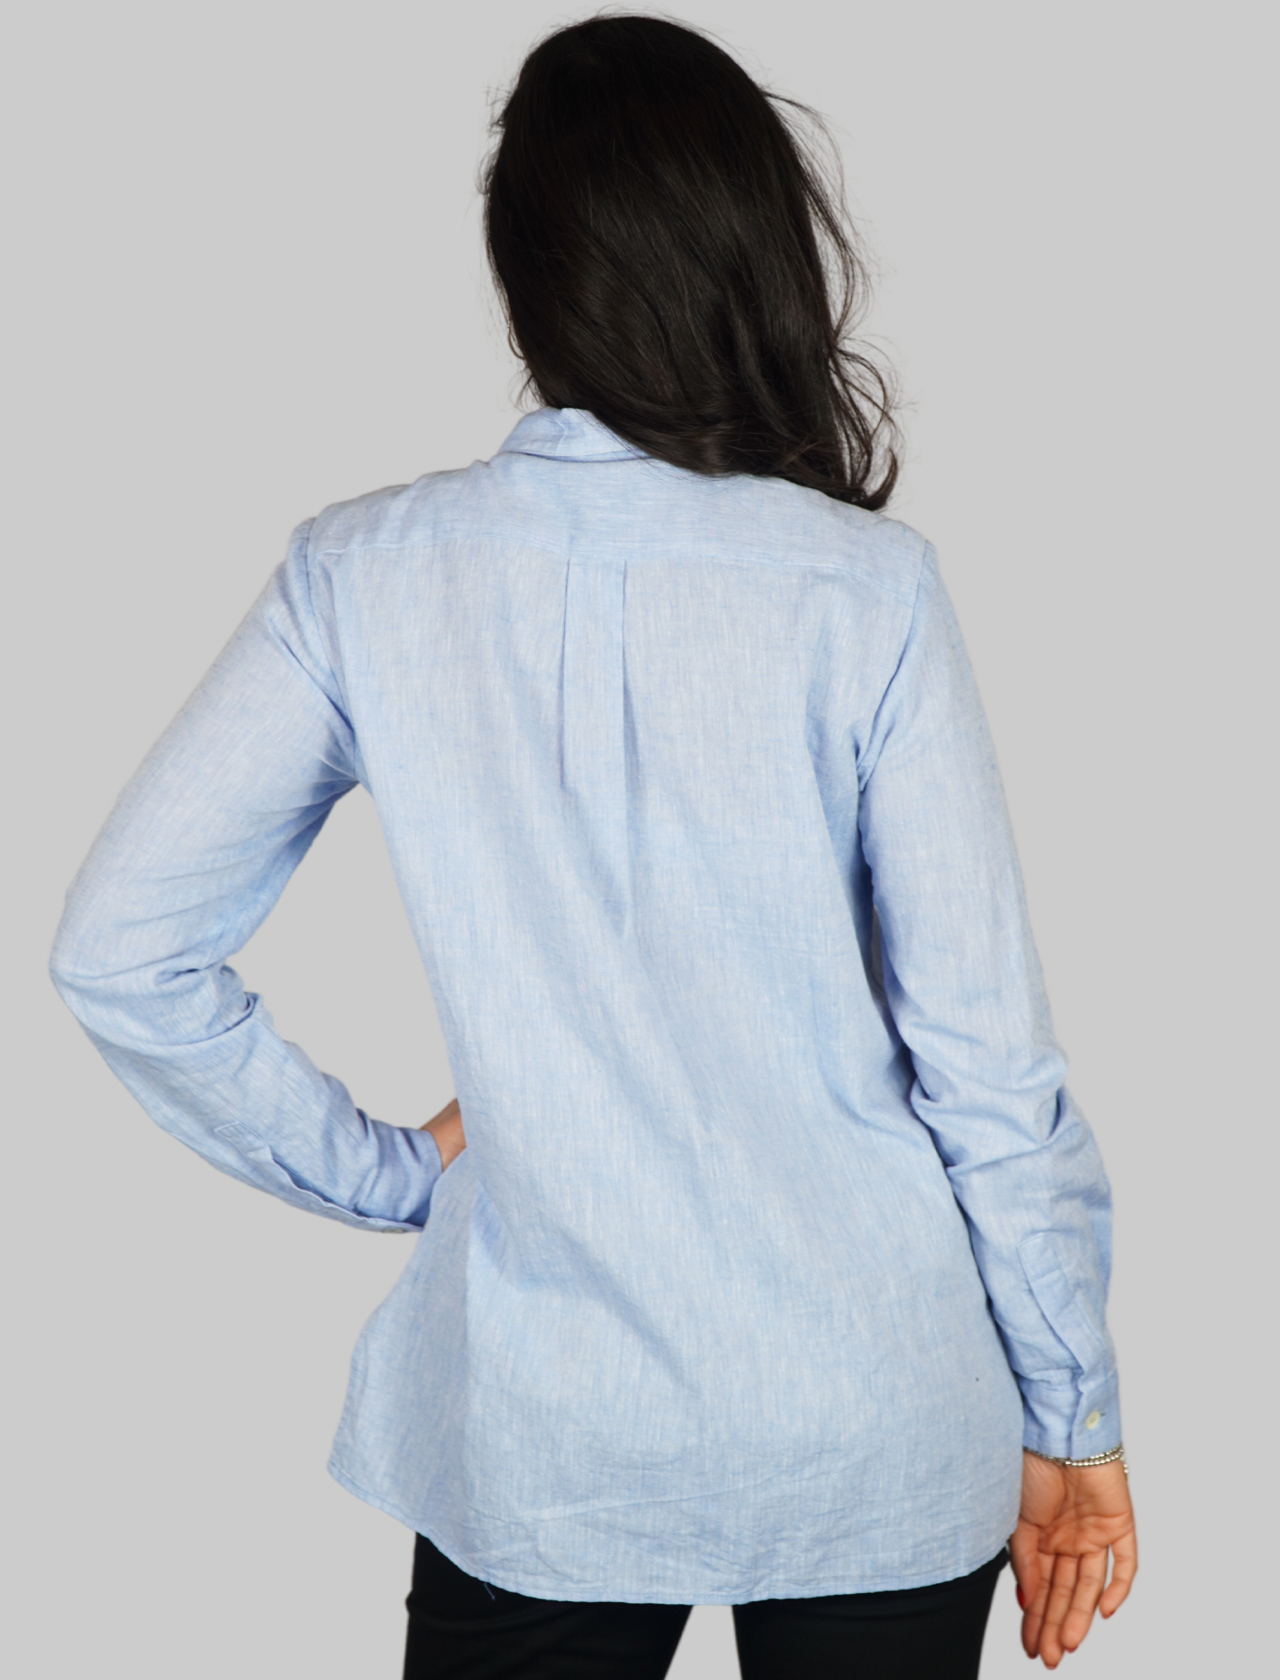 Women's Clothing Natural Fibers Shirt in Light Blue with Printed Twill Pocket Maliparmi | Shirts and tops | JM54284007681004